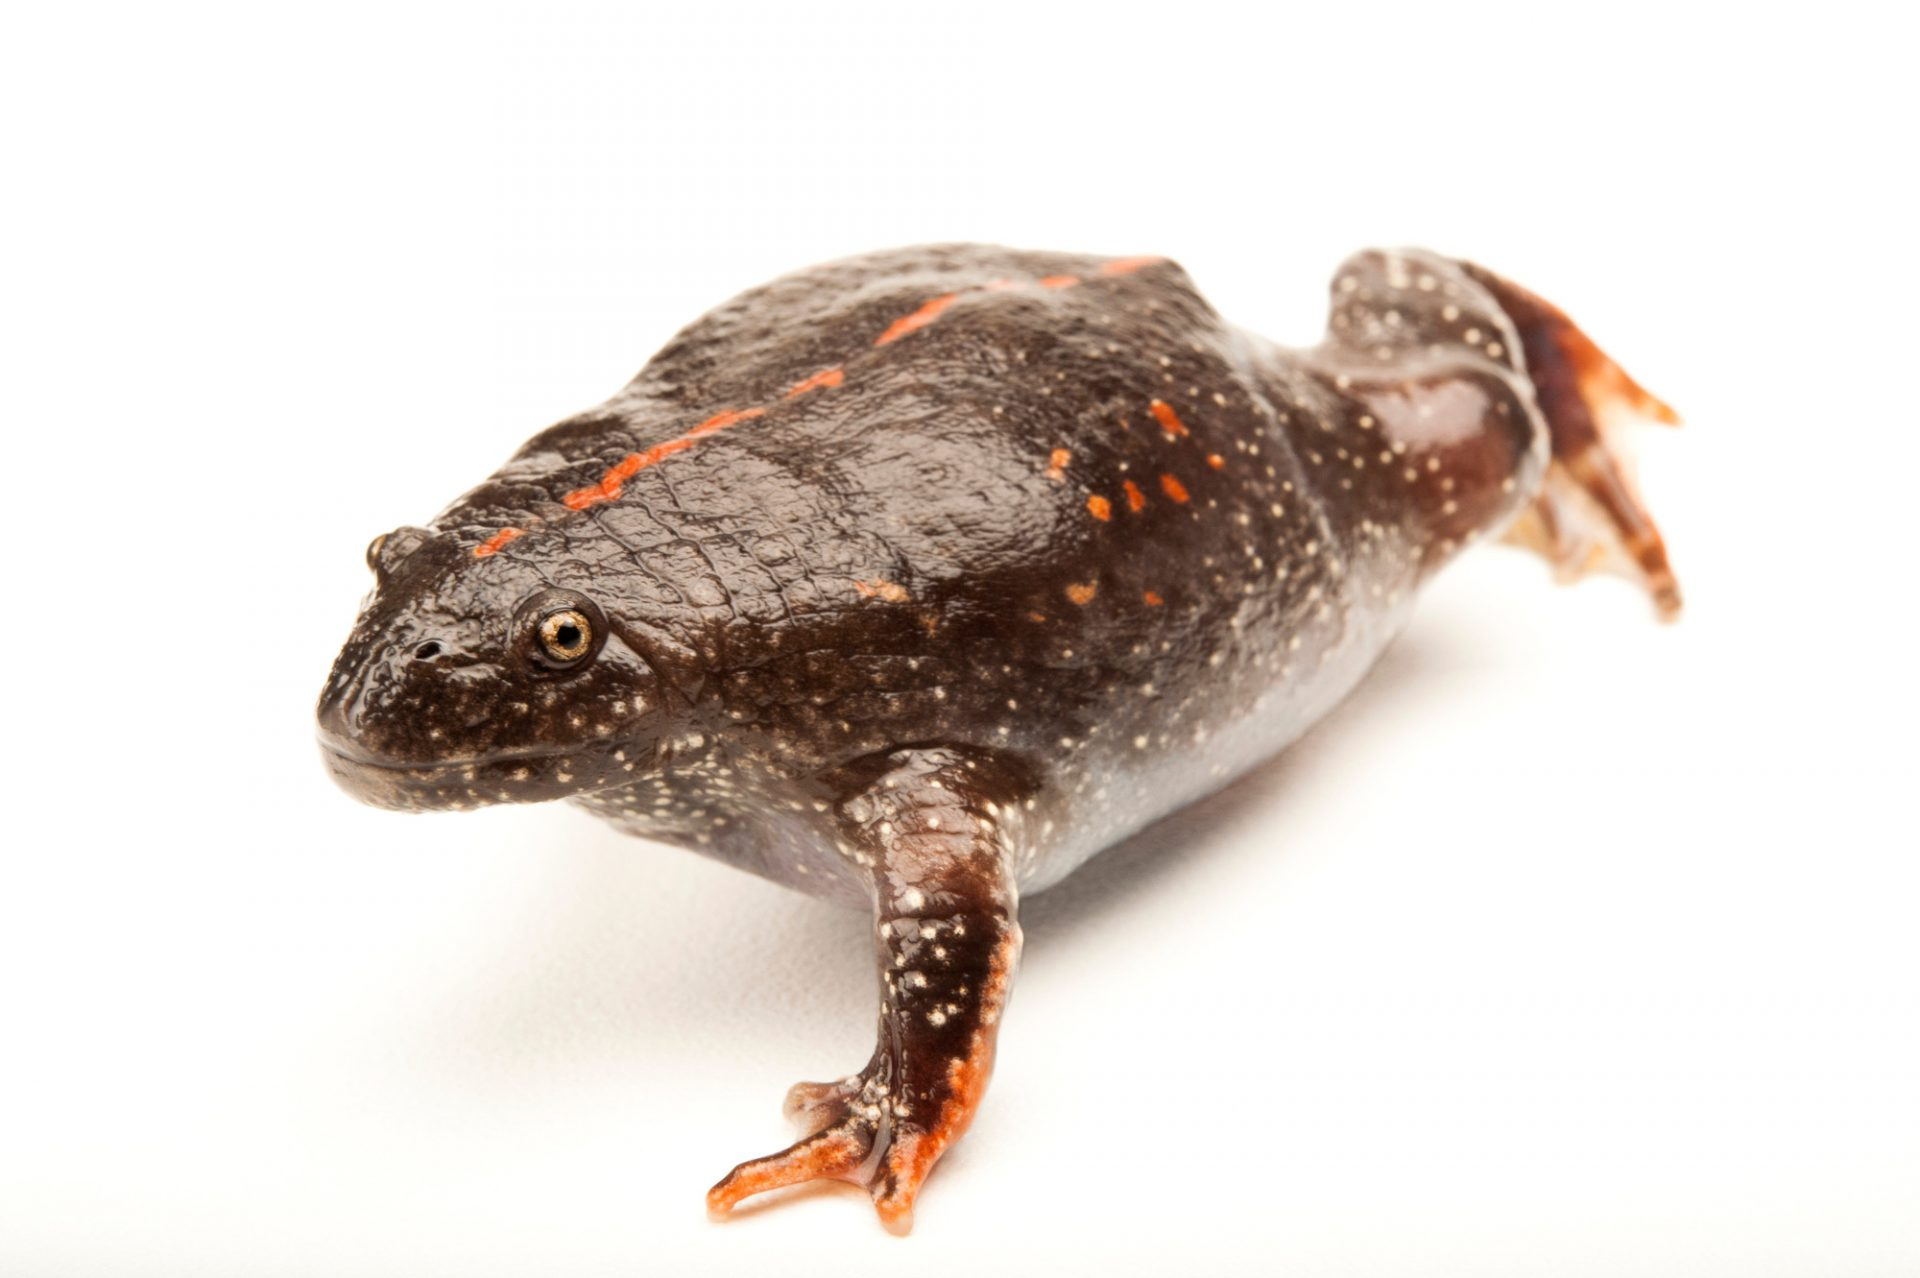 A Mexican burrowing toad (Rhinophrynus dorsalis) at the Gladys Porter Zoo in Brownsville, Texas.